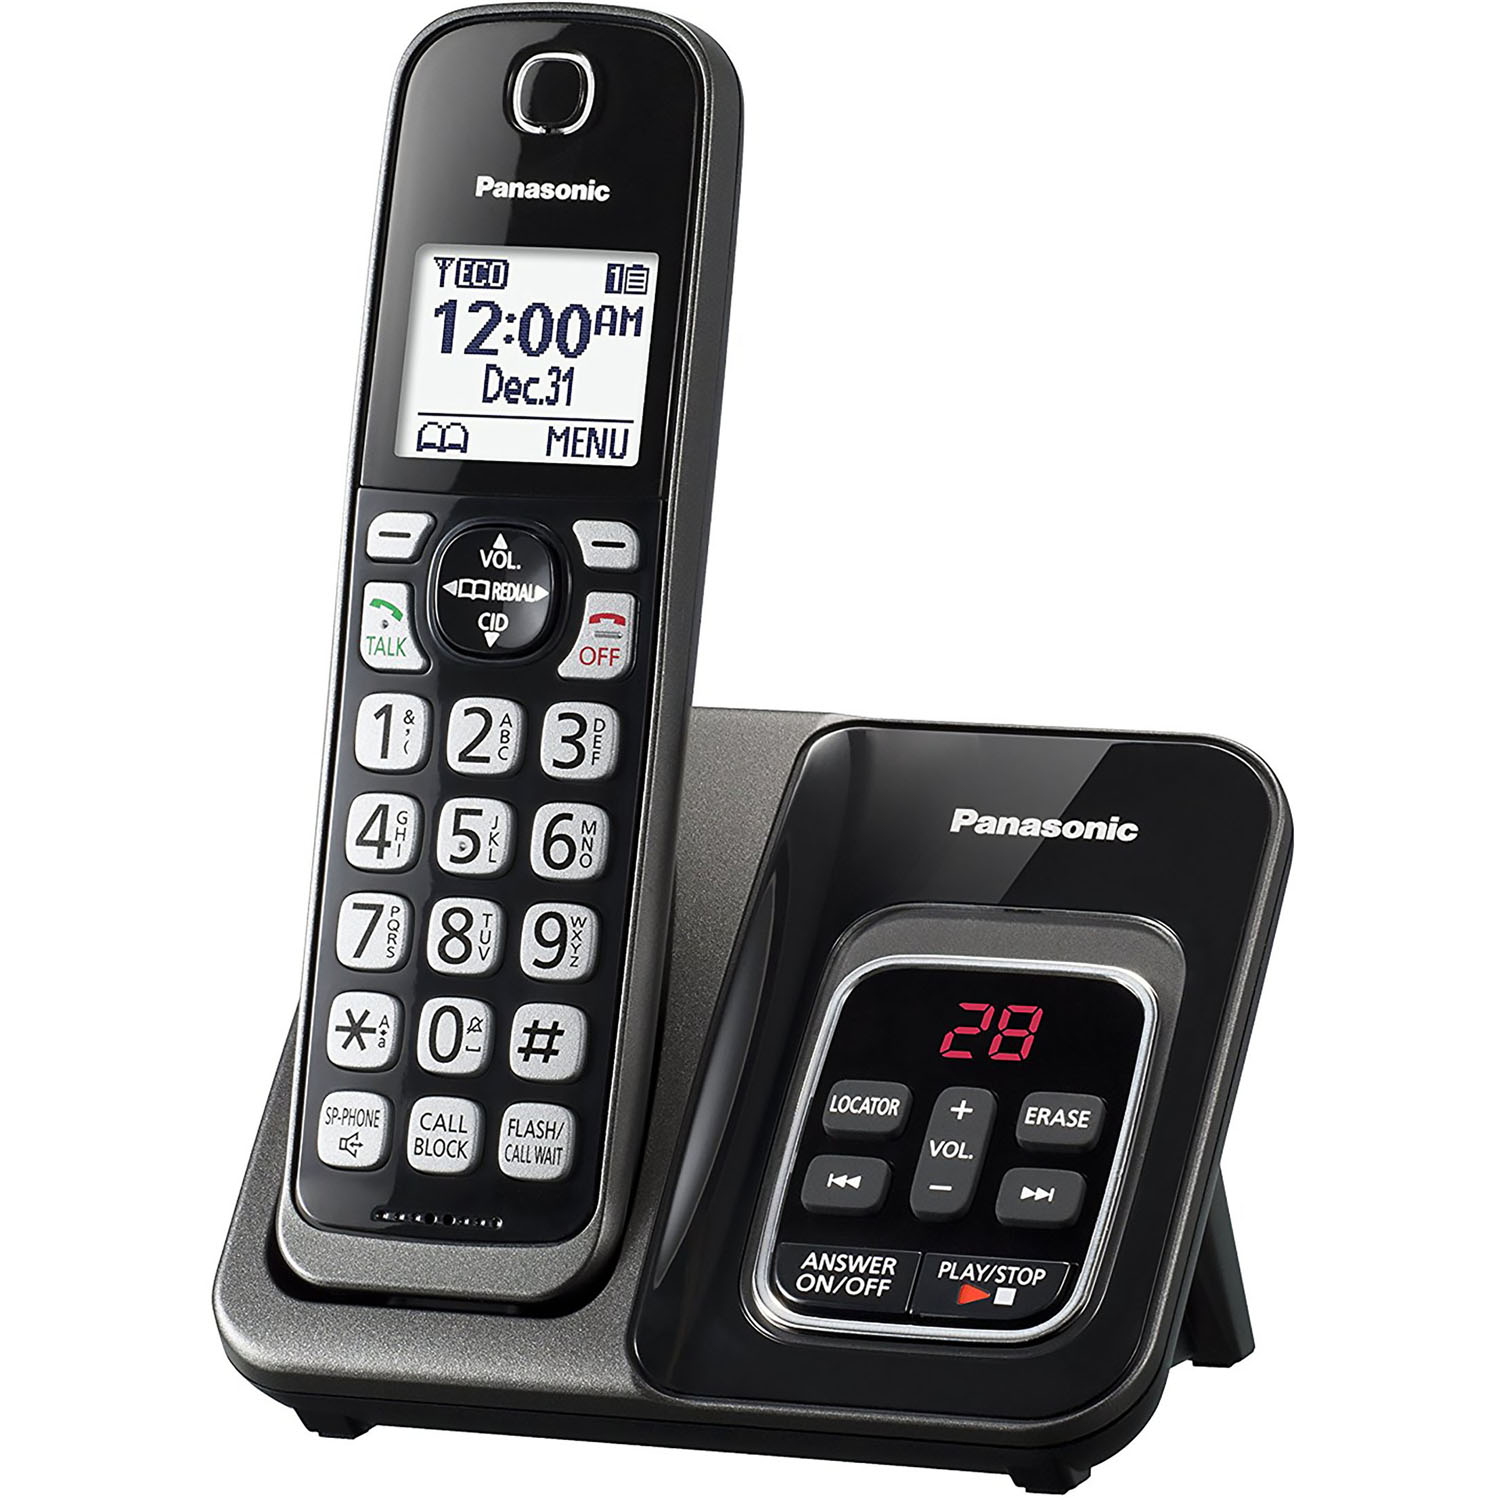 Panasonic Expandable Cordless Phone with Call Block and Answering Machine